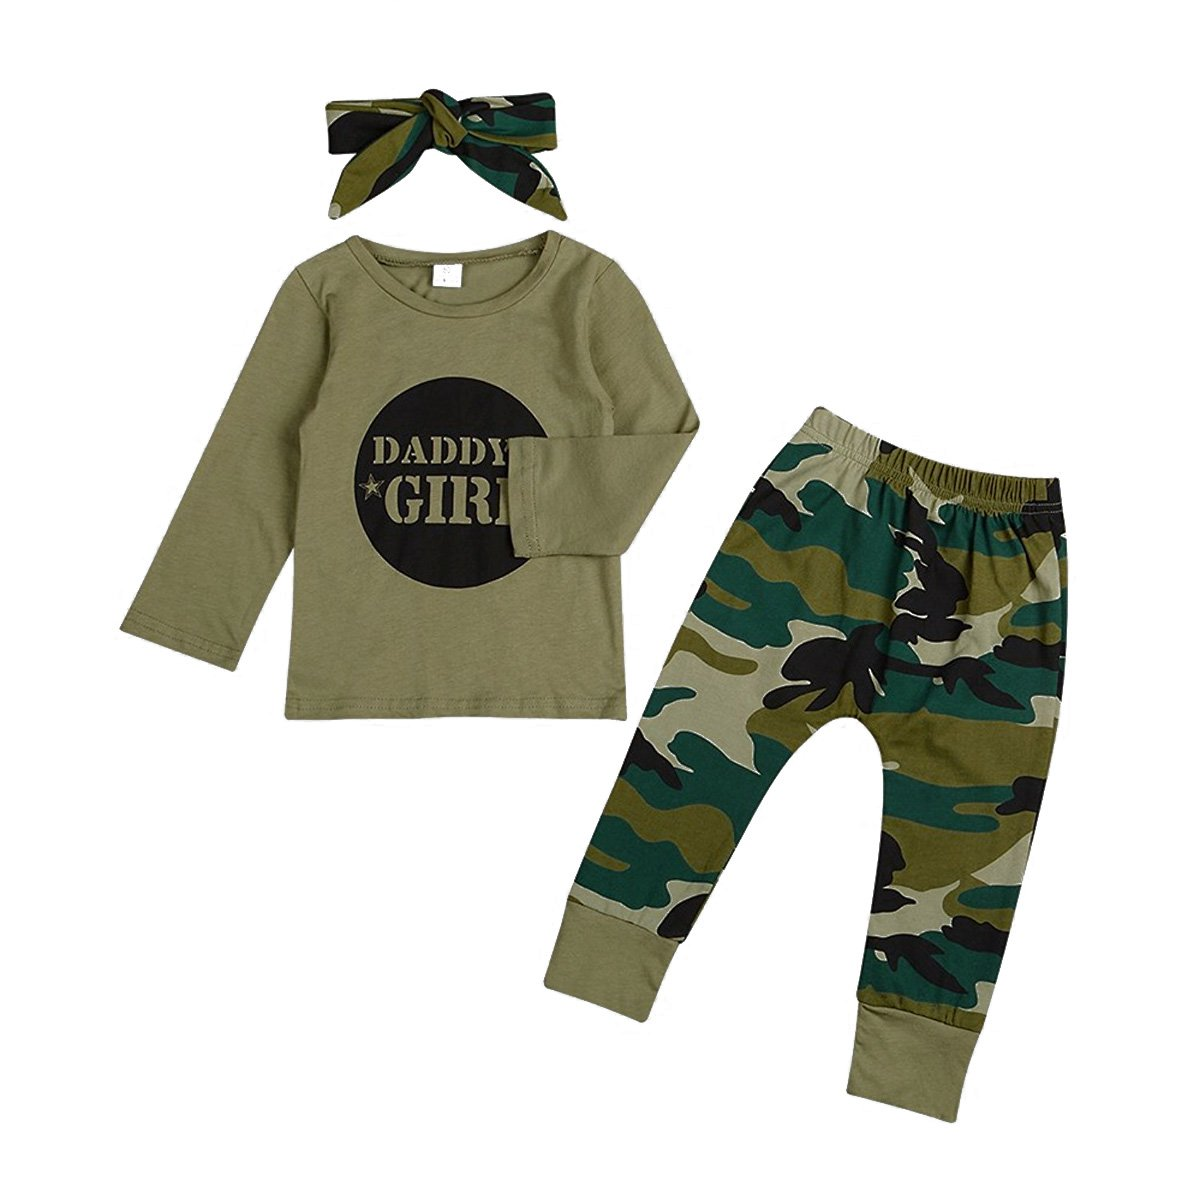 GRNSHTS Baby Girls Boys Father's Day Outfit Daddy's Baby Camouflage Pants Set 31611